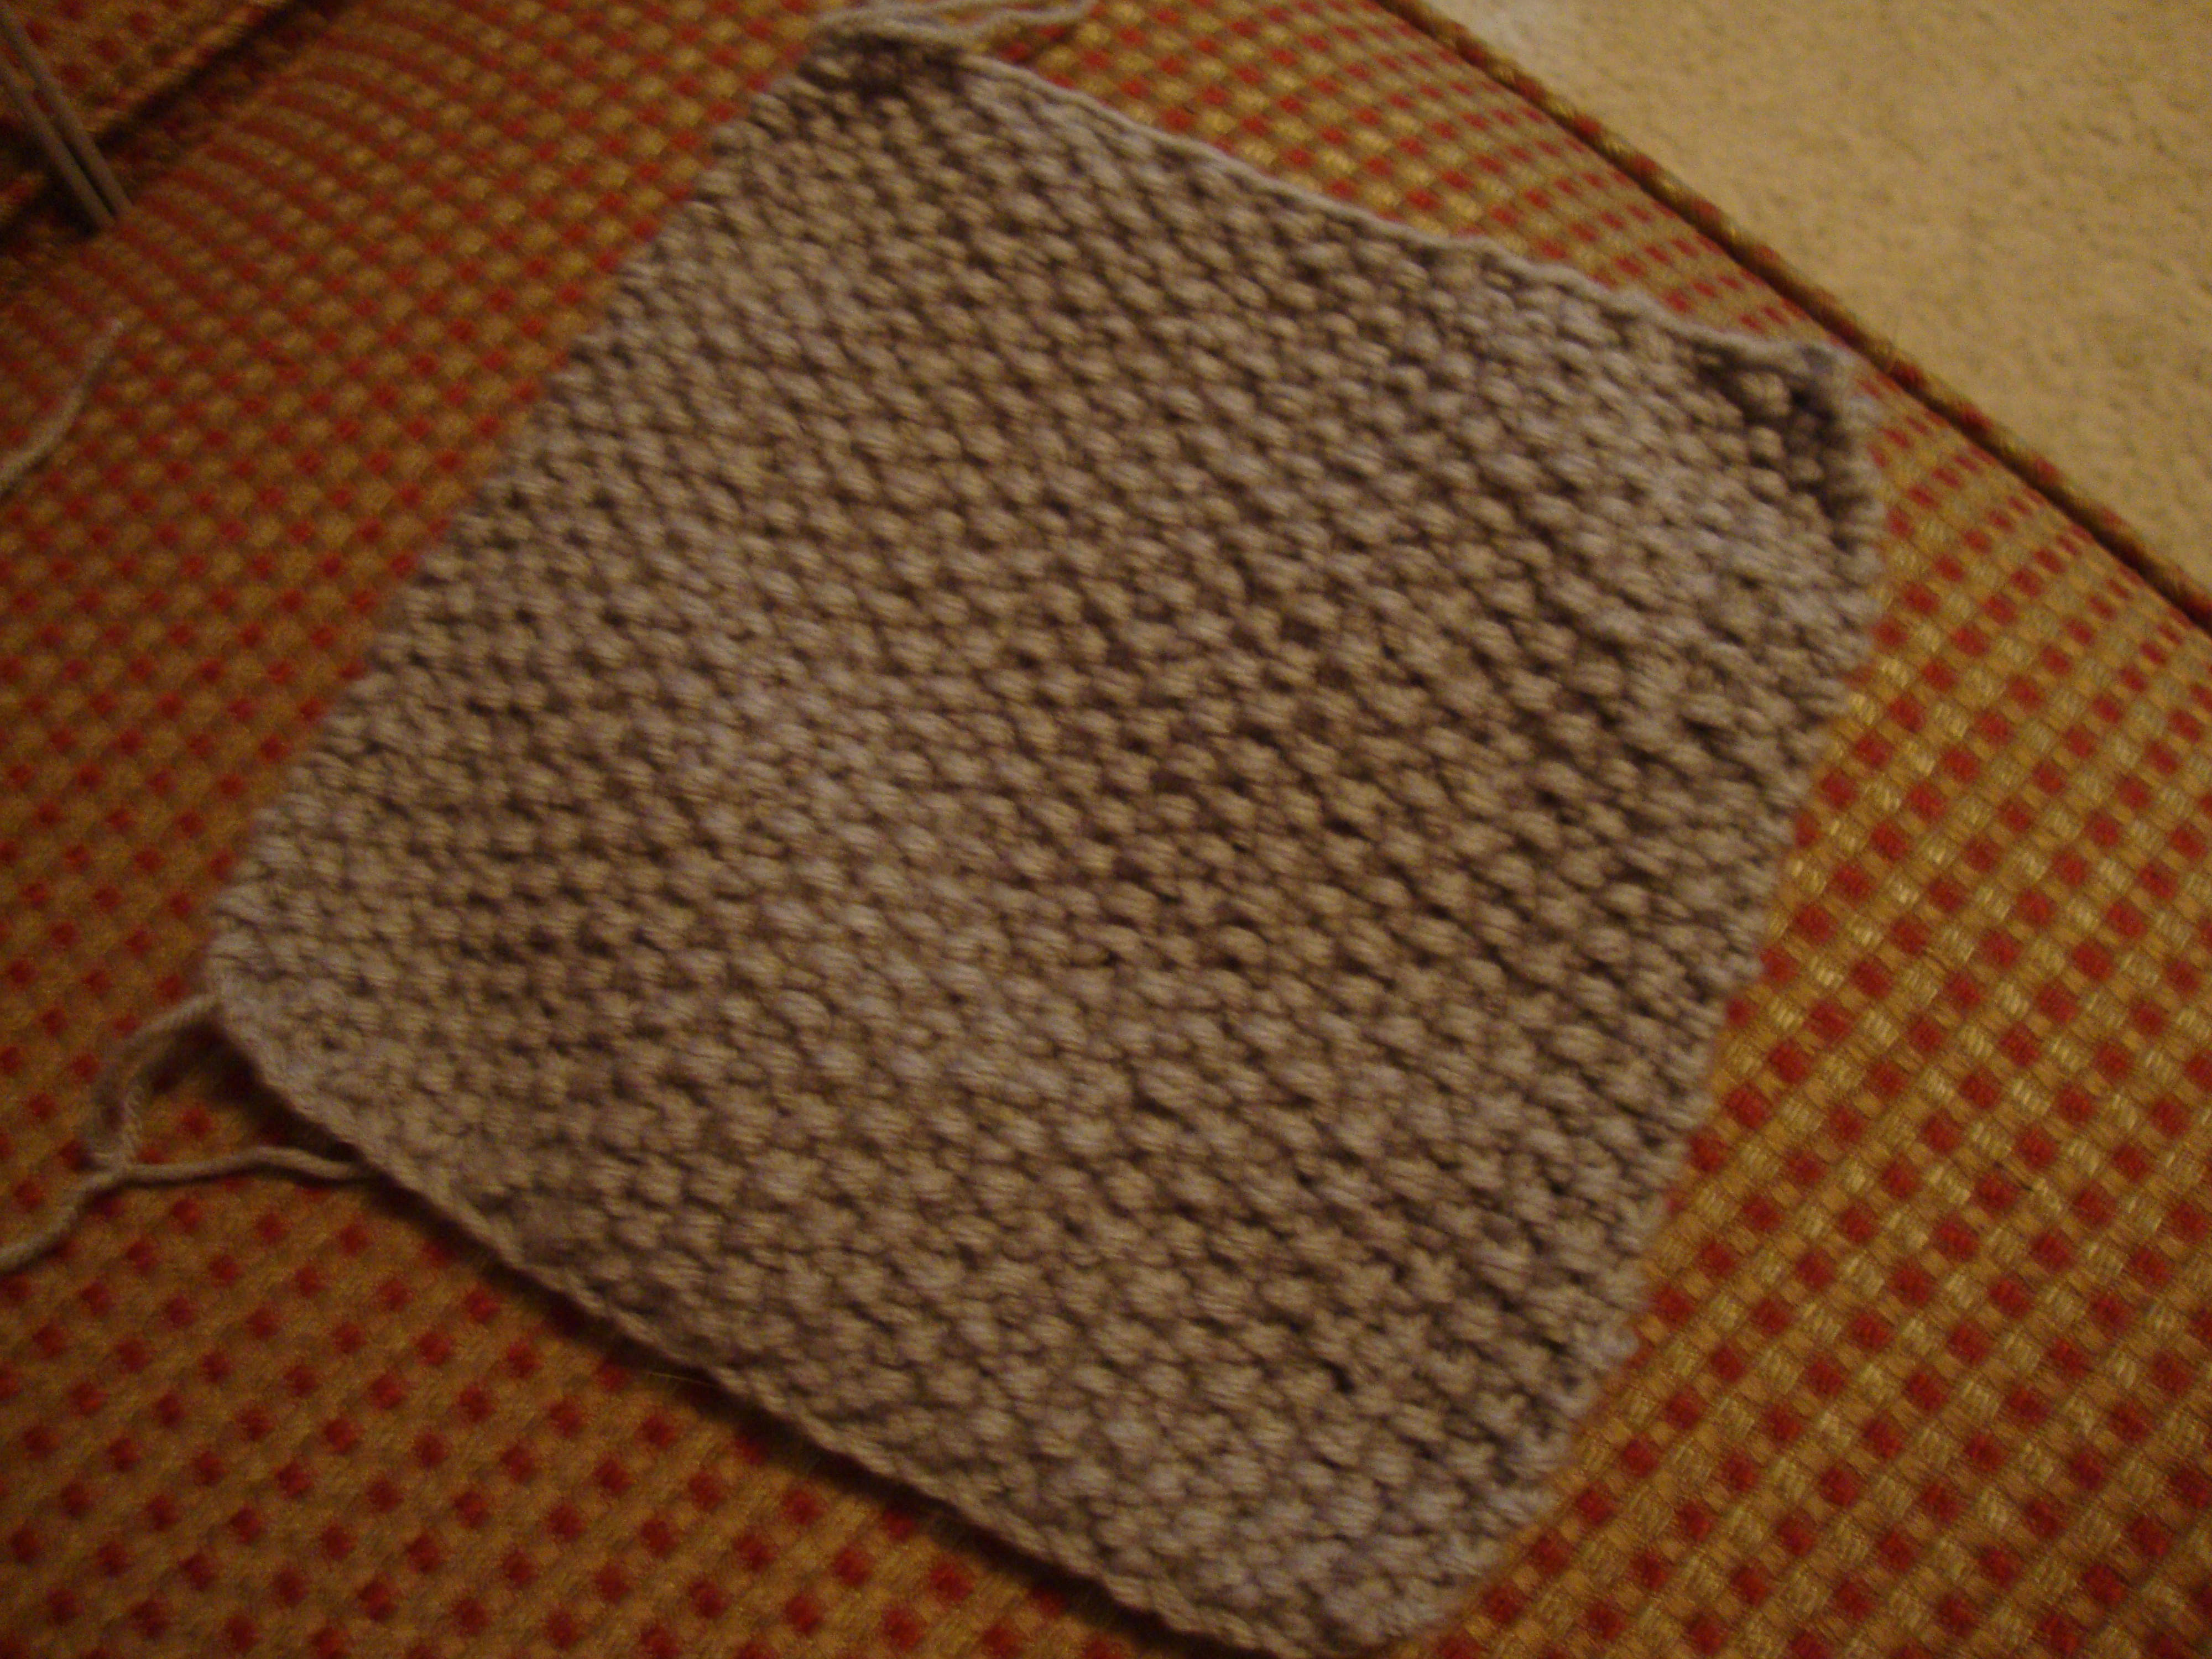 Knitting Projects « For the Love of Felt